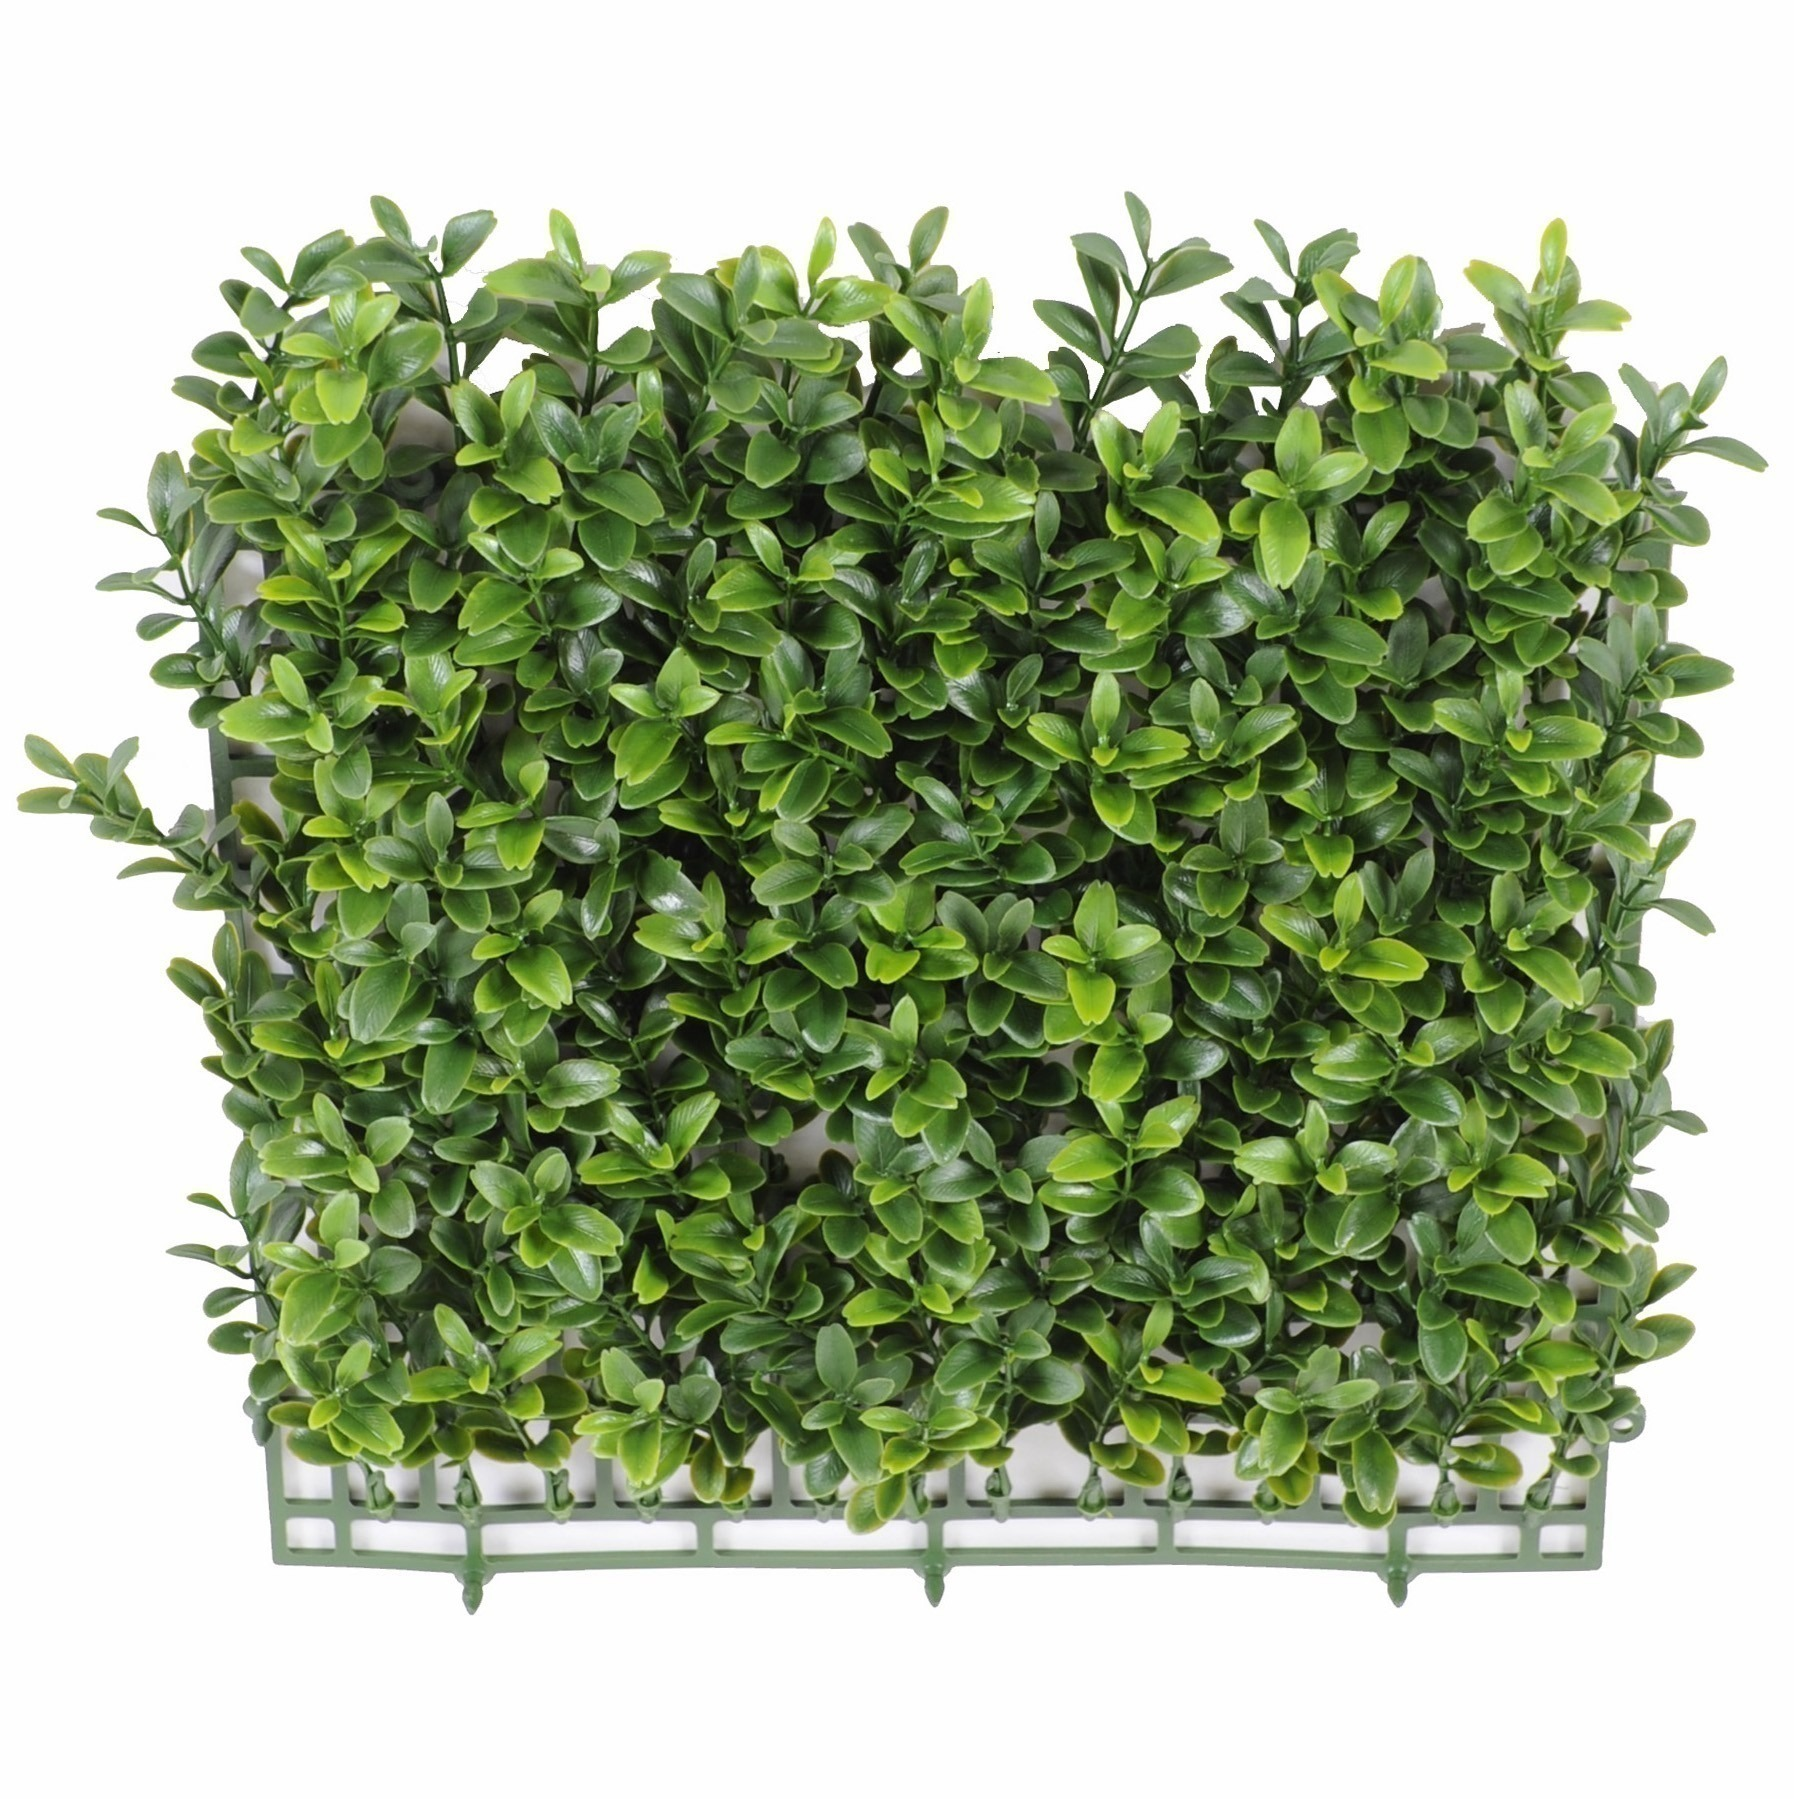 Lierre Artificiel Castorama Mur Vegetal Exterieur Pas Cher Simple Mur Vegetal